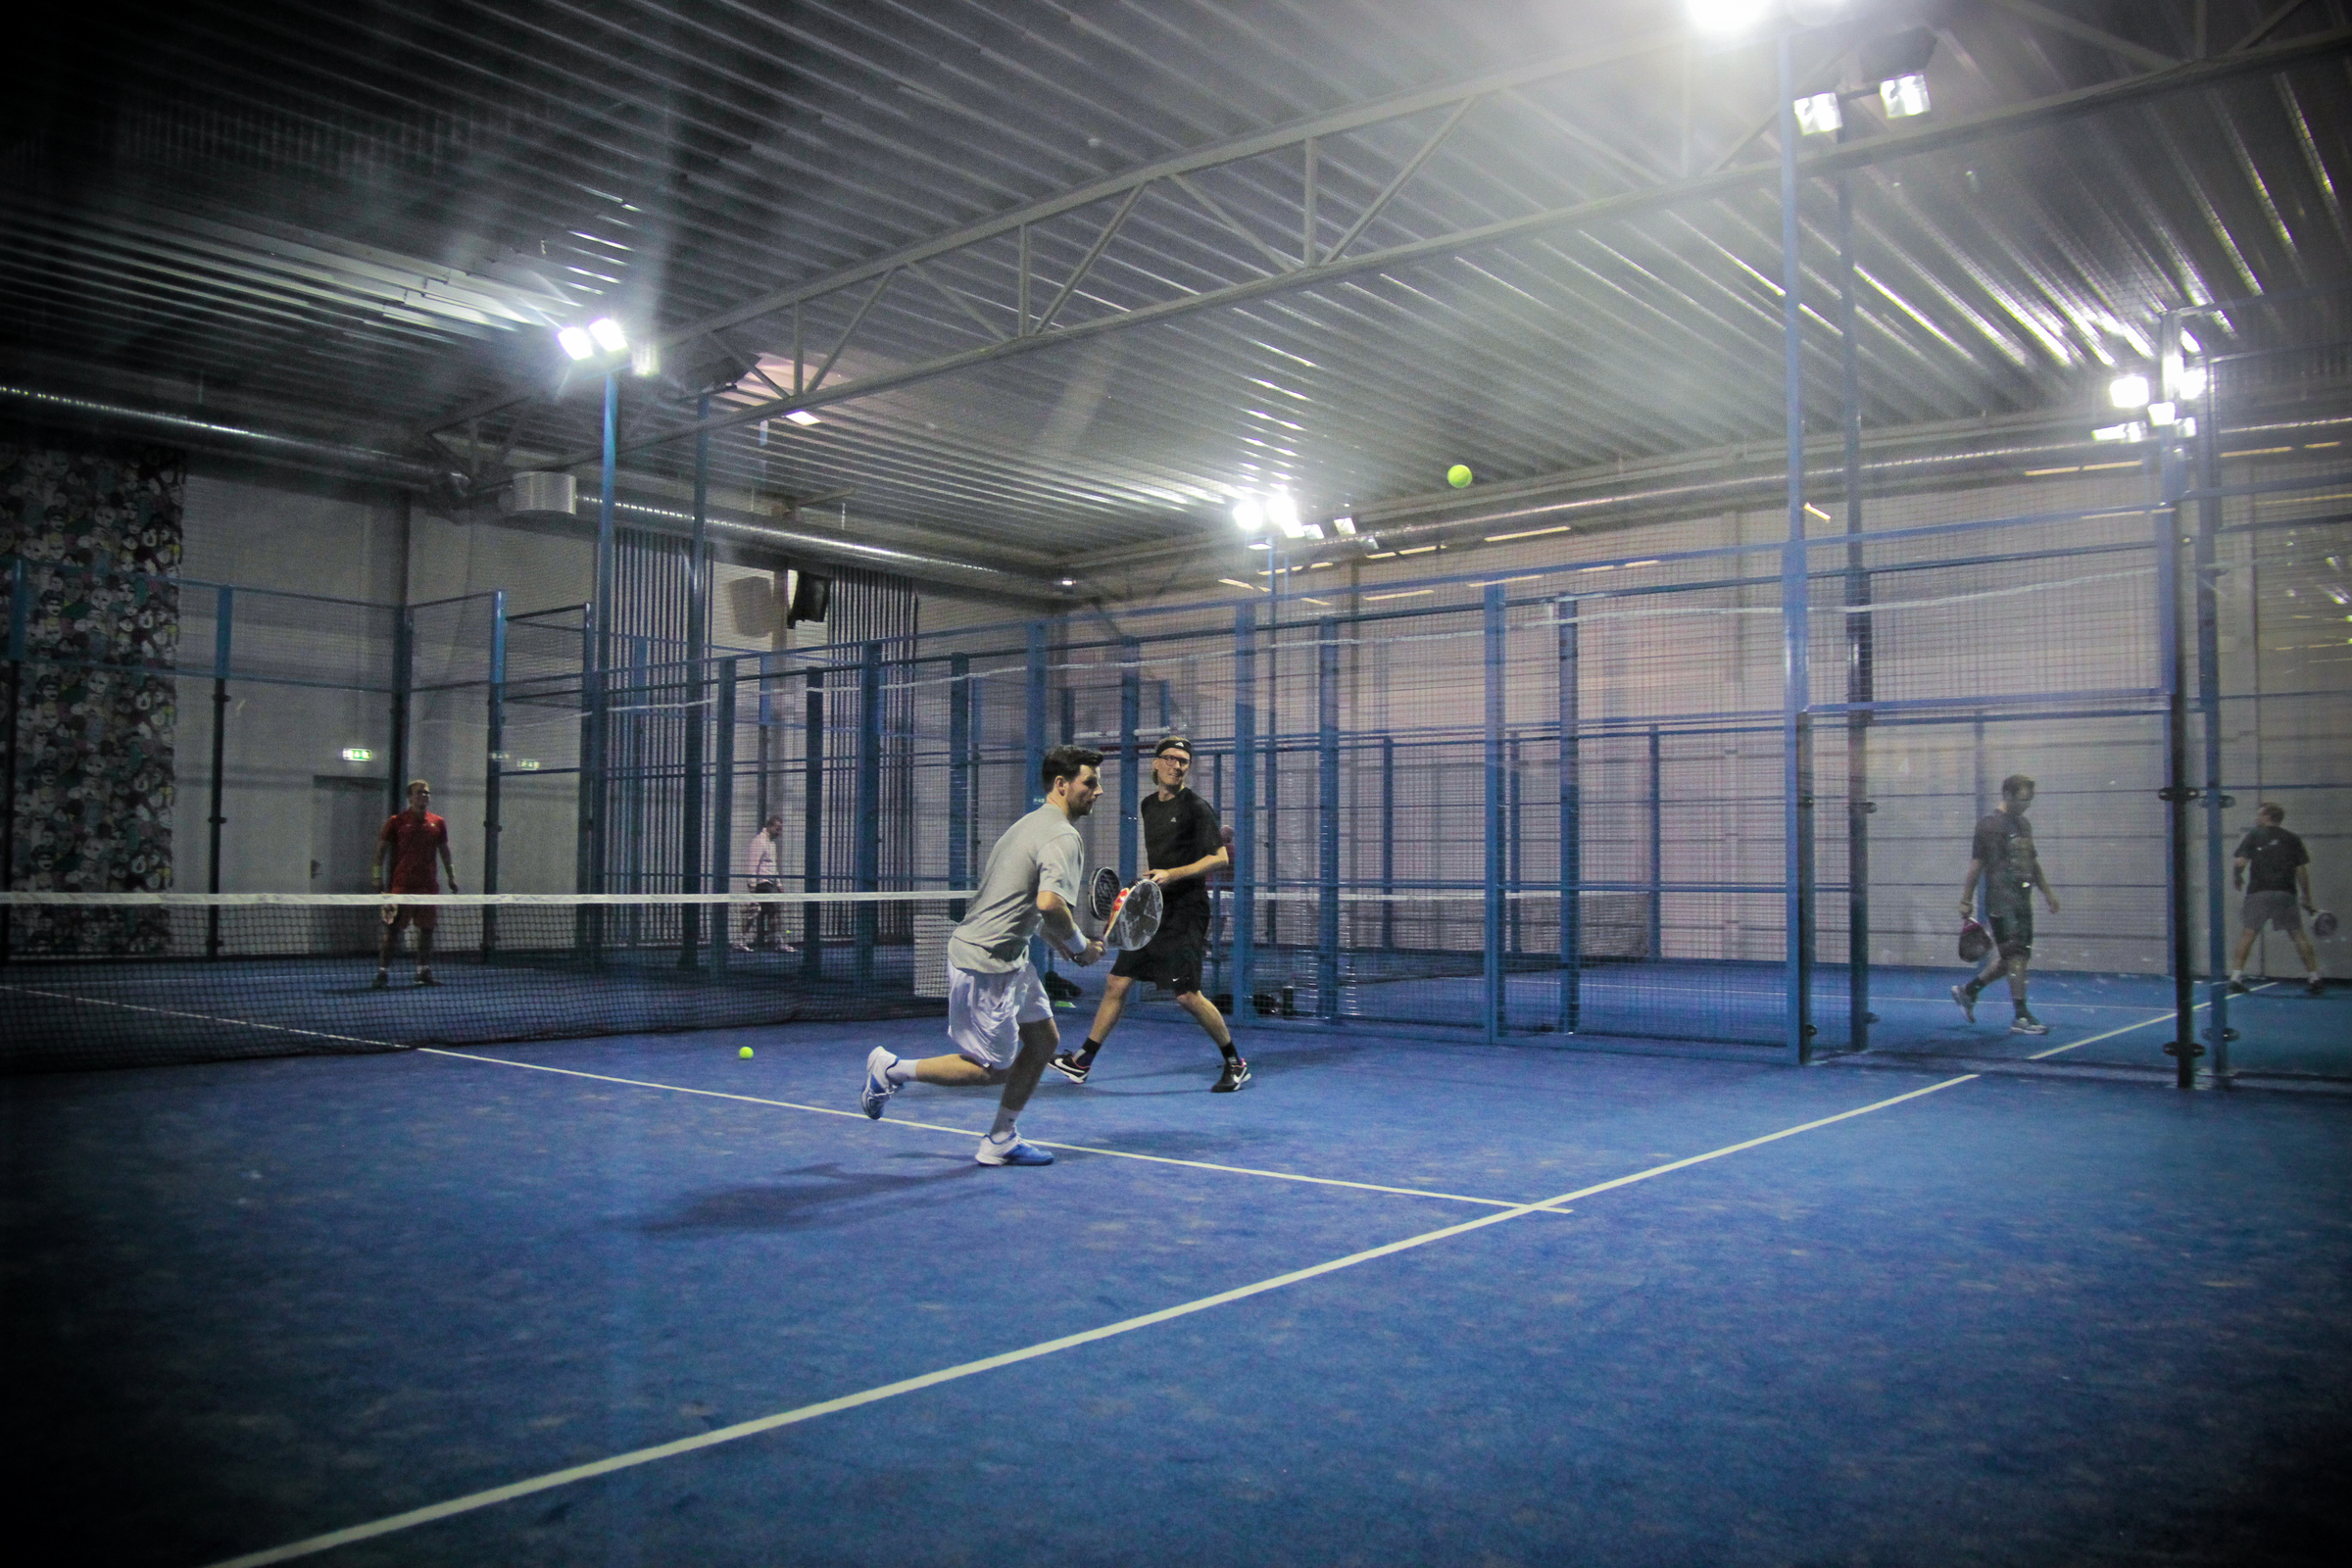 Pistas de pádel en Suecia   Padel courts in Sweden (Foto Photo  http 93644e6250884